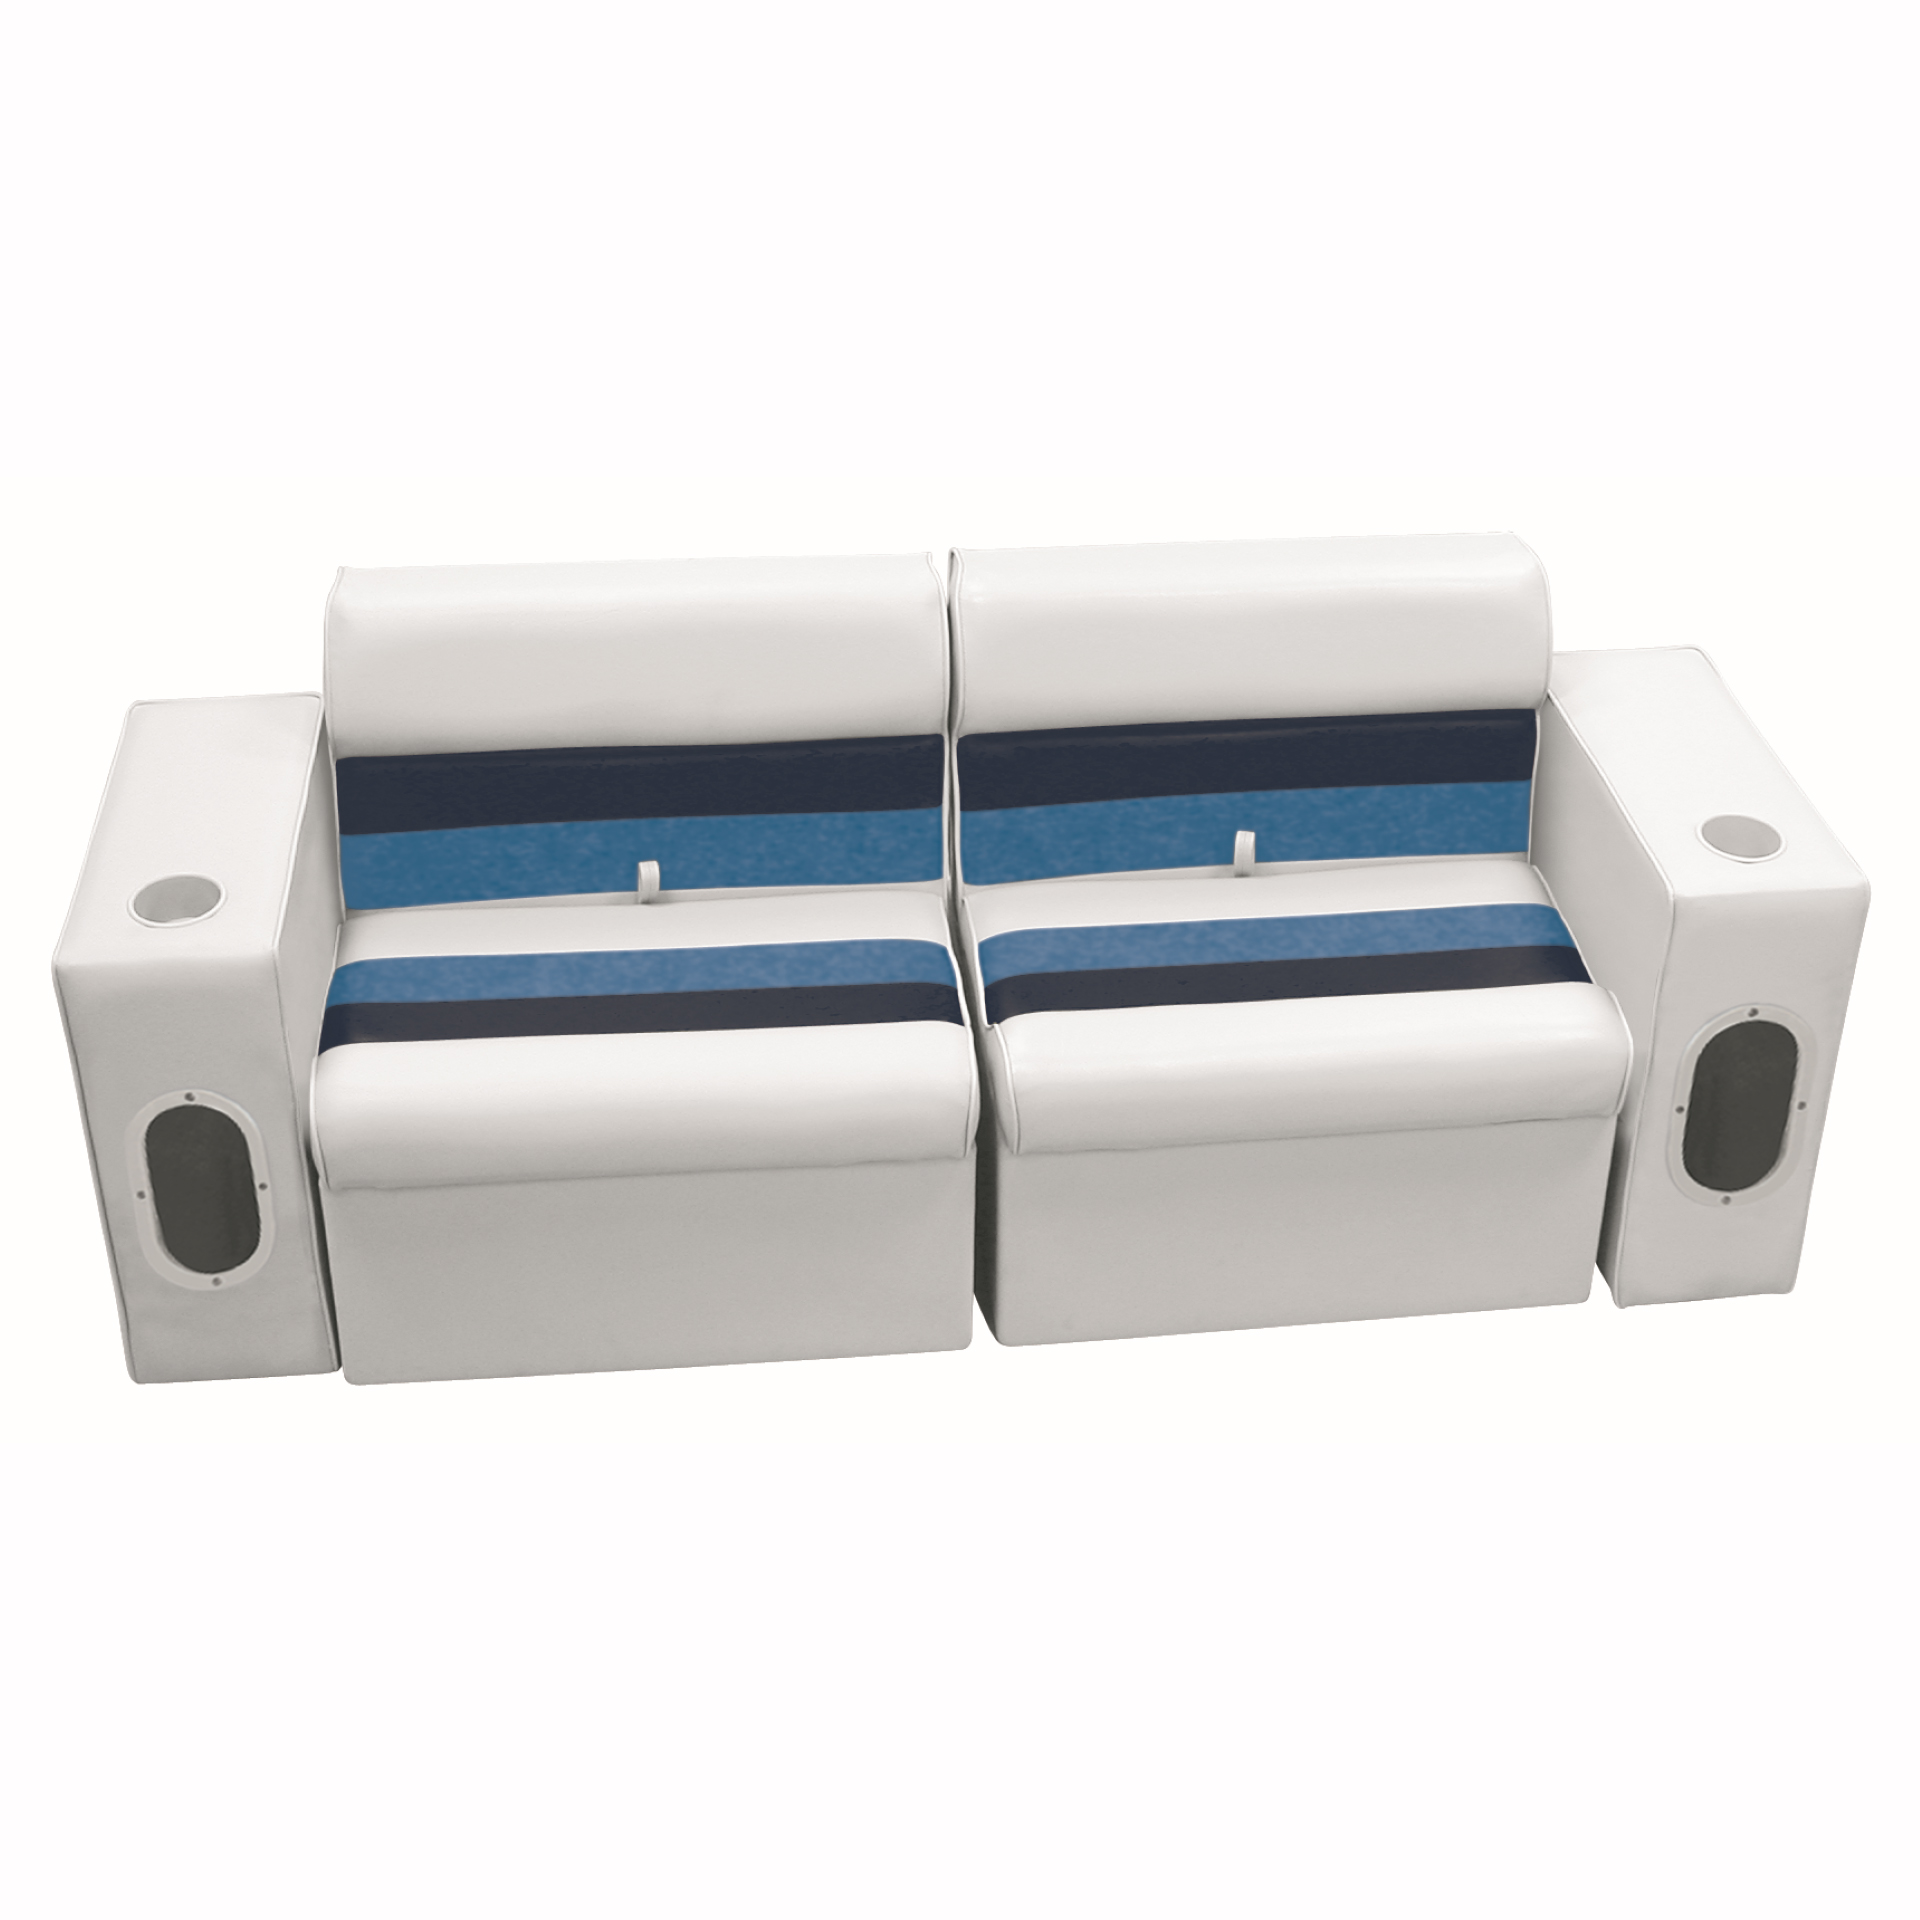 Deluxe Pontoon Furniture w/Classic Base - Front Group Package E, White/Navy/Blue